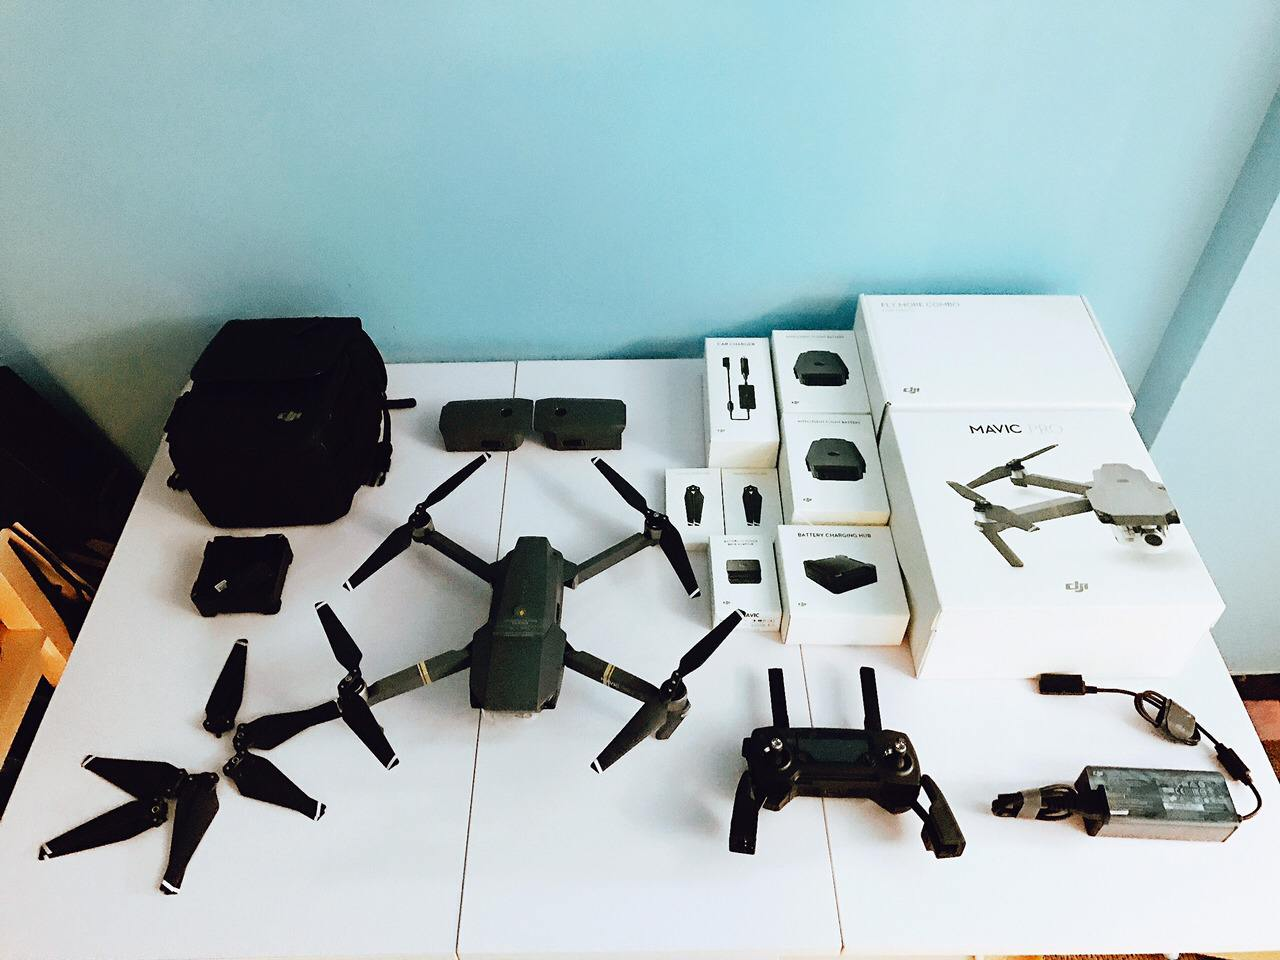 accept paypal,200usd wholesale dji,gopro 5 black,free shipping